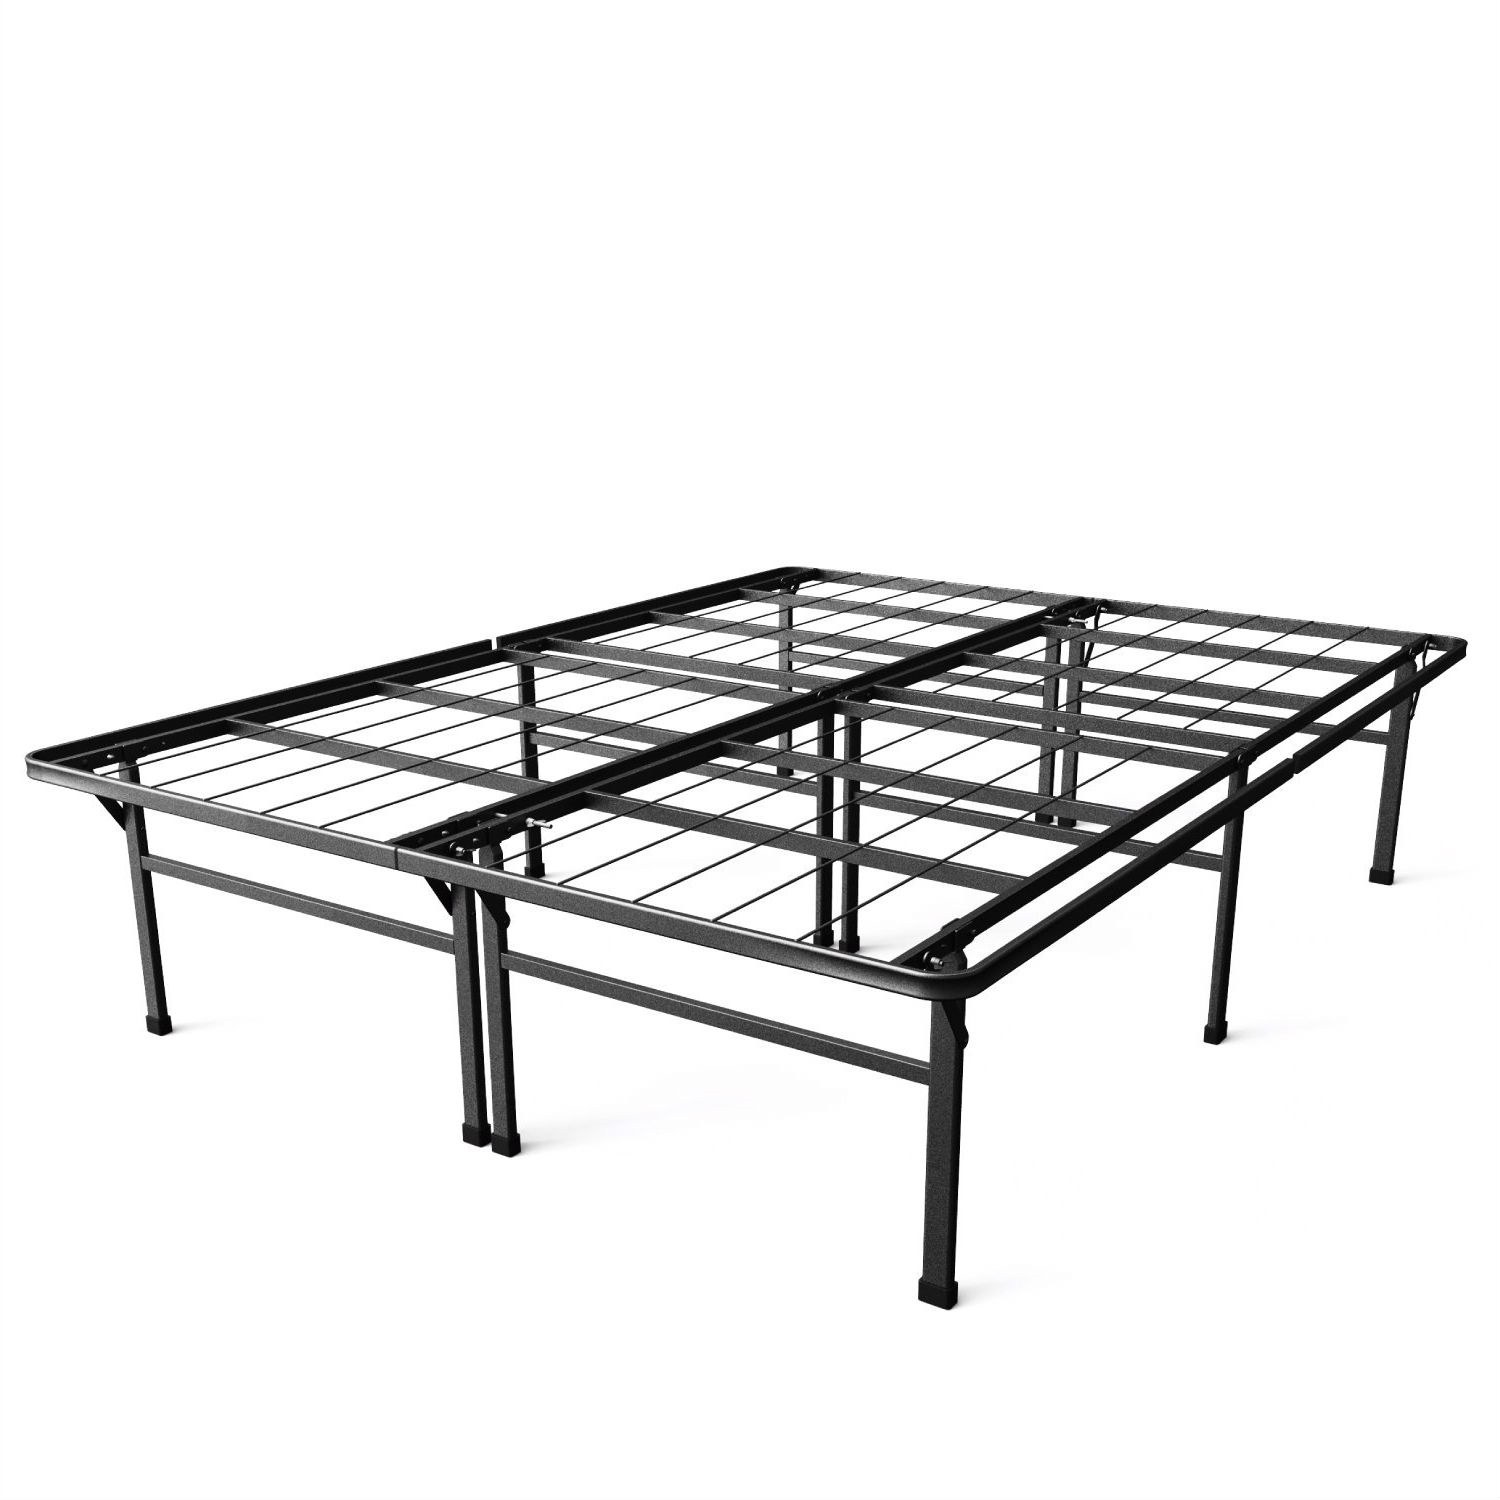 - Full Size 18-inch High Rise Folding Metal Platform Bed Frame